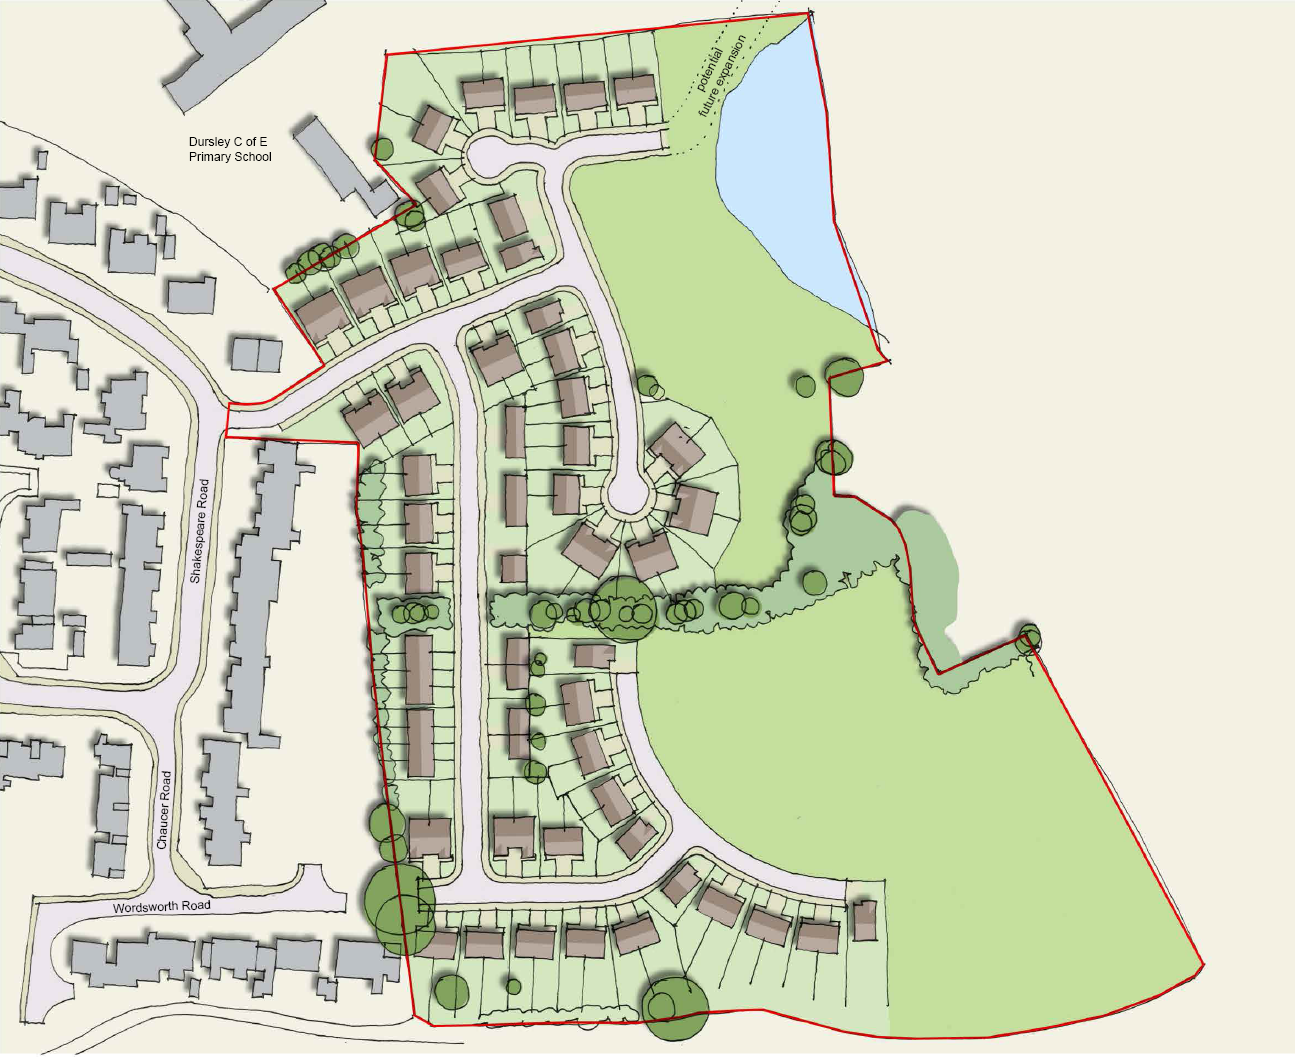 Plans for 100 homes next to Dursley Primary Academy to be unveiled this evening